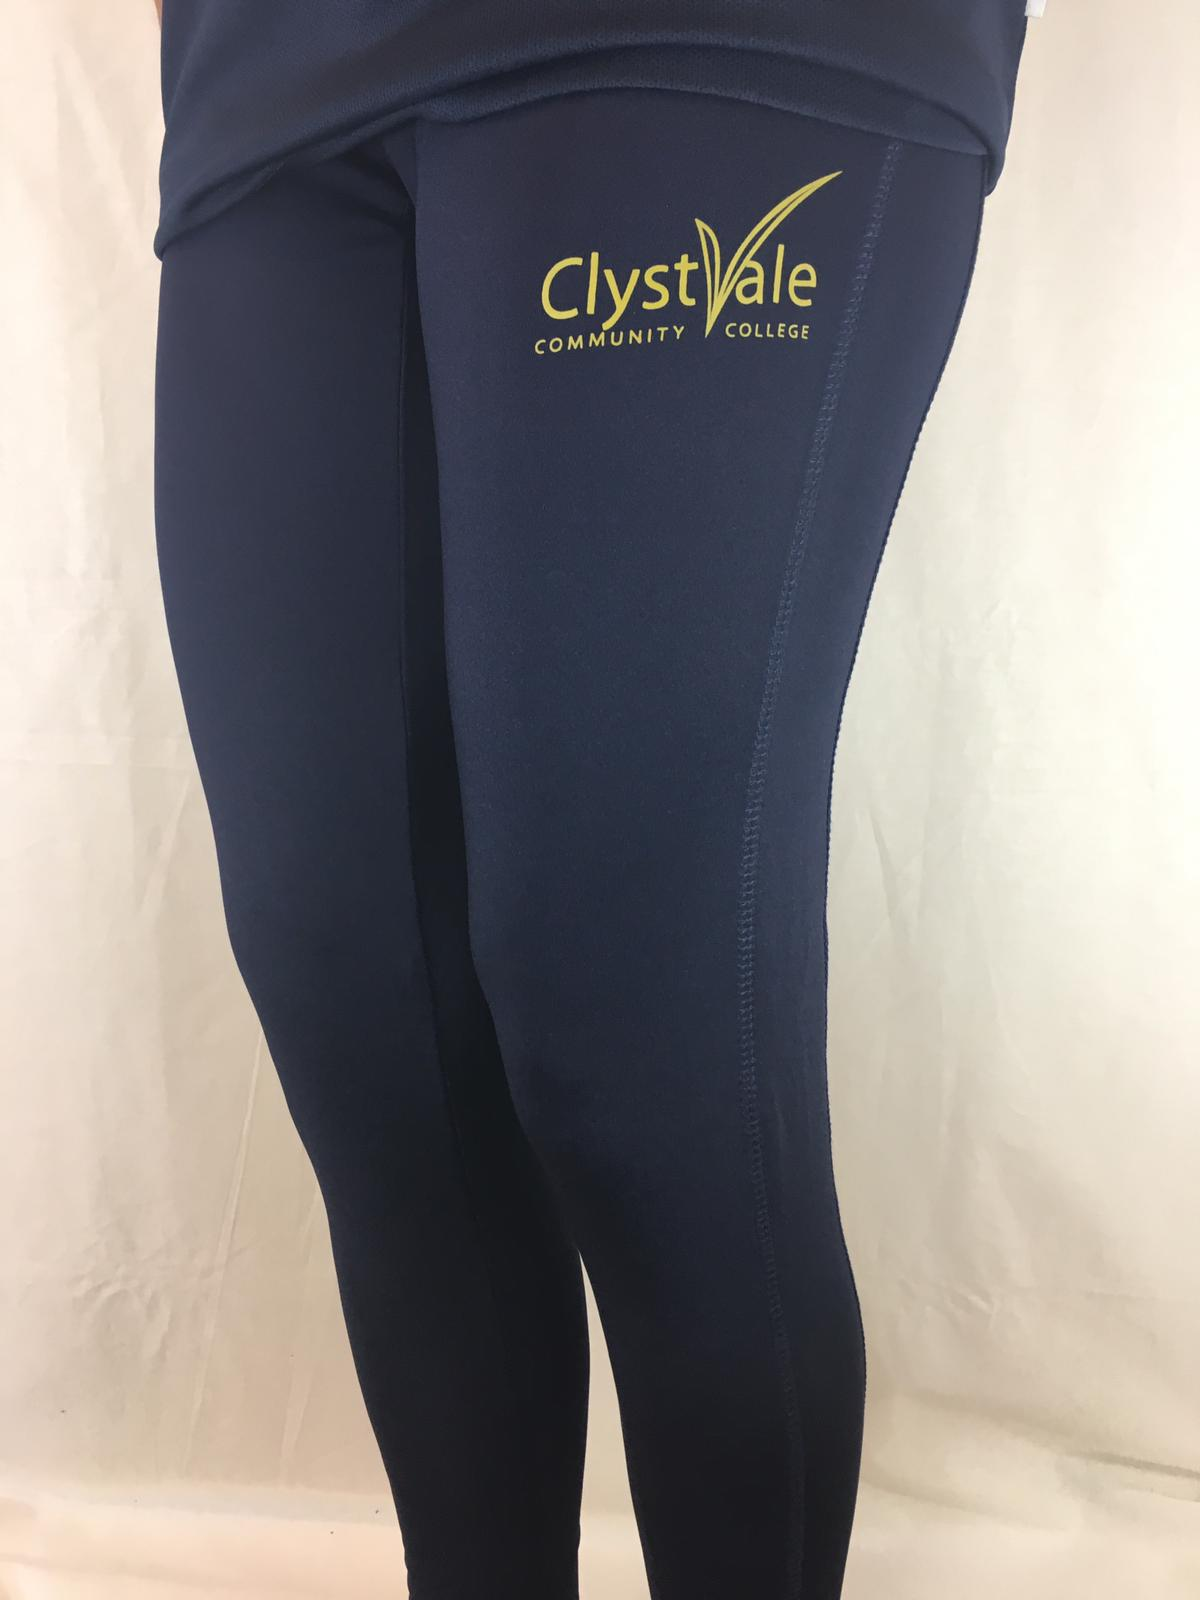 Clyst Vale community College Sports Leggings